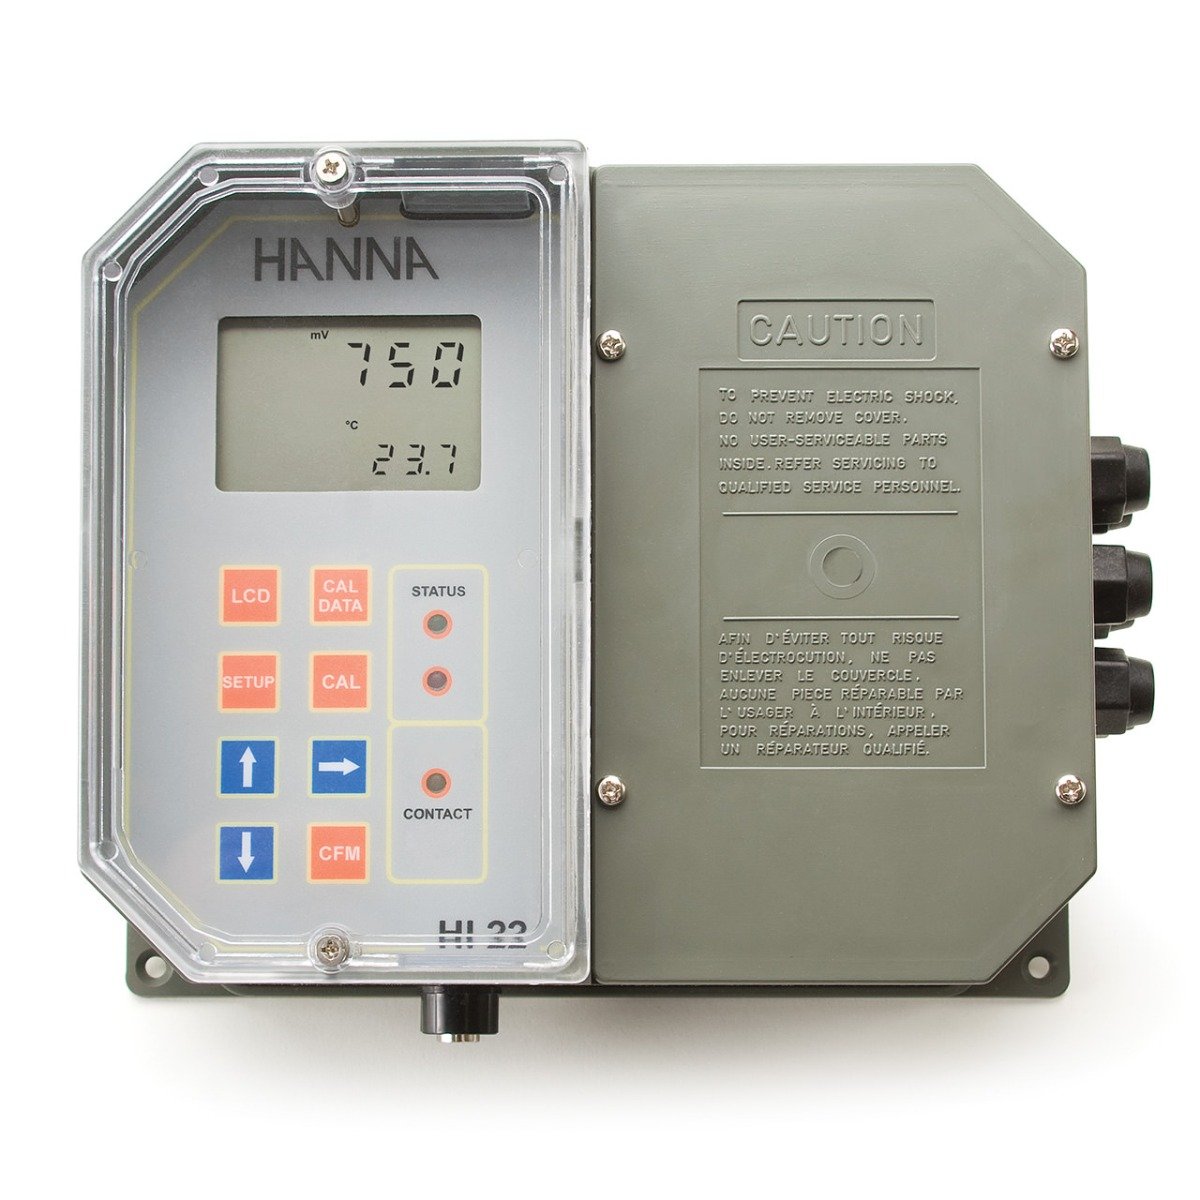 Wall Mounted ORP Digital Controller with Single Setpoint and Matching Pin HI22111